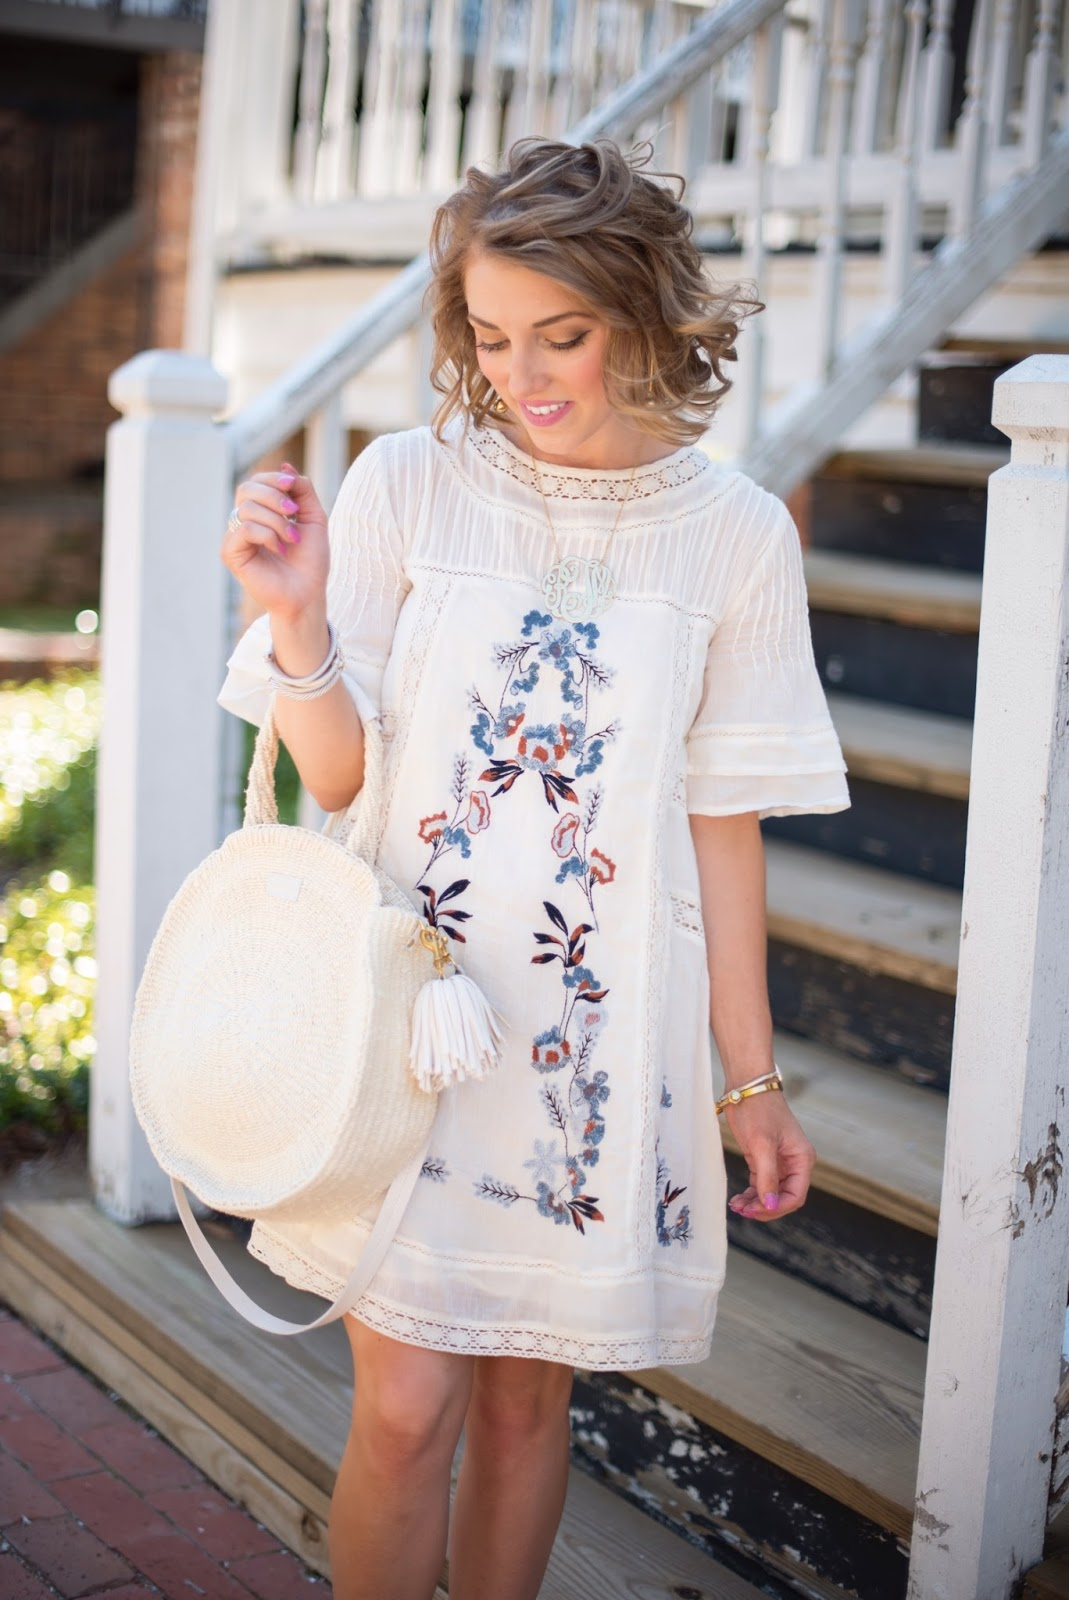 Free People Perfectly Victorian Embroidered Mini Dress - Click through to see more on Something Delightful Blog